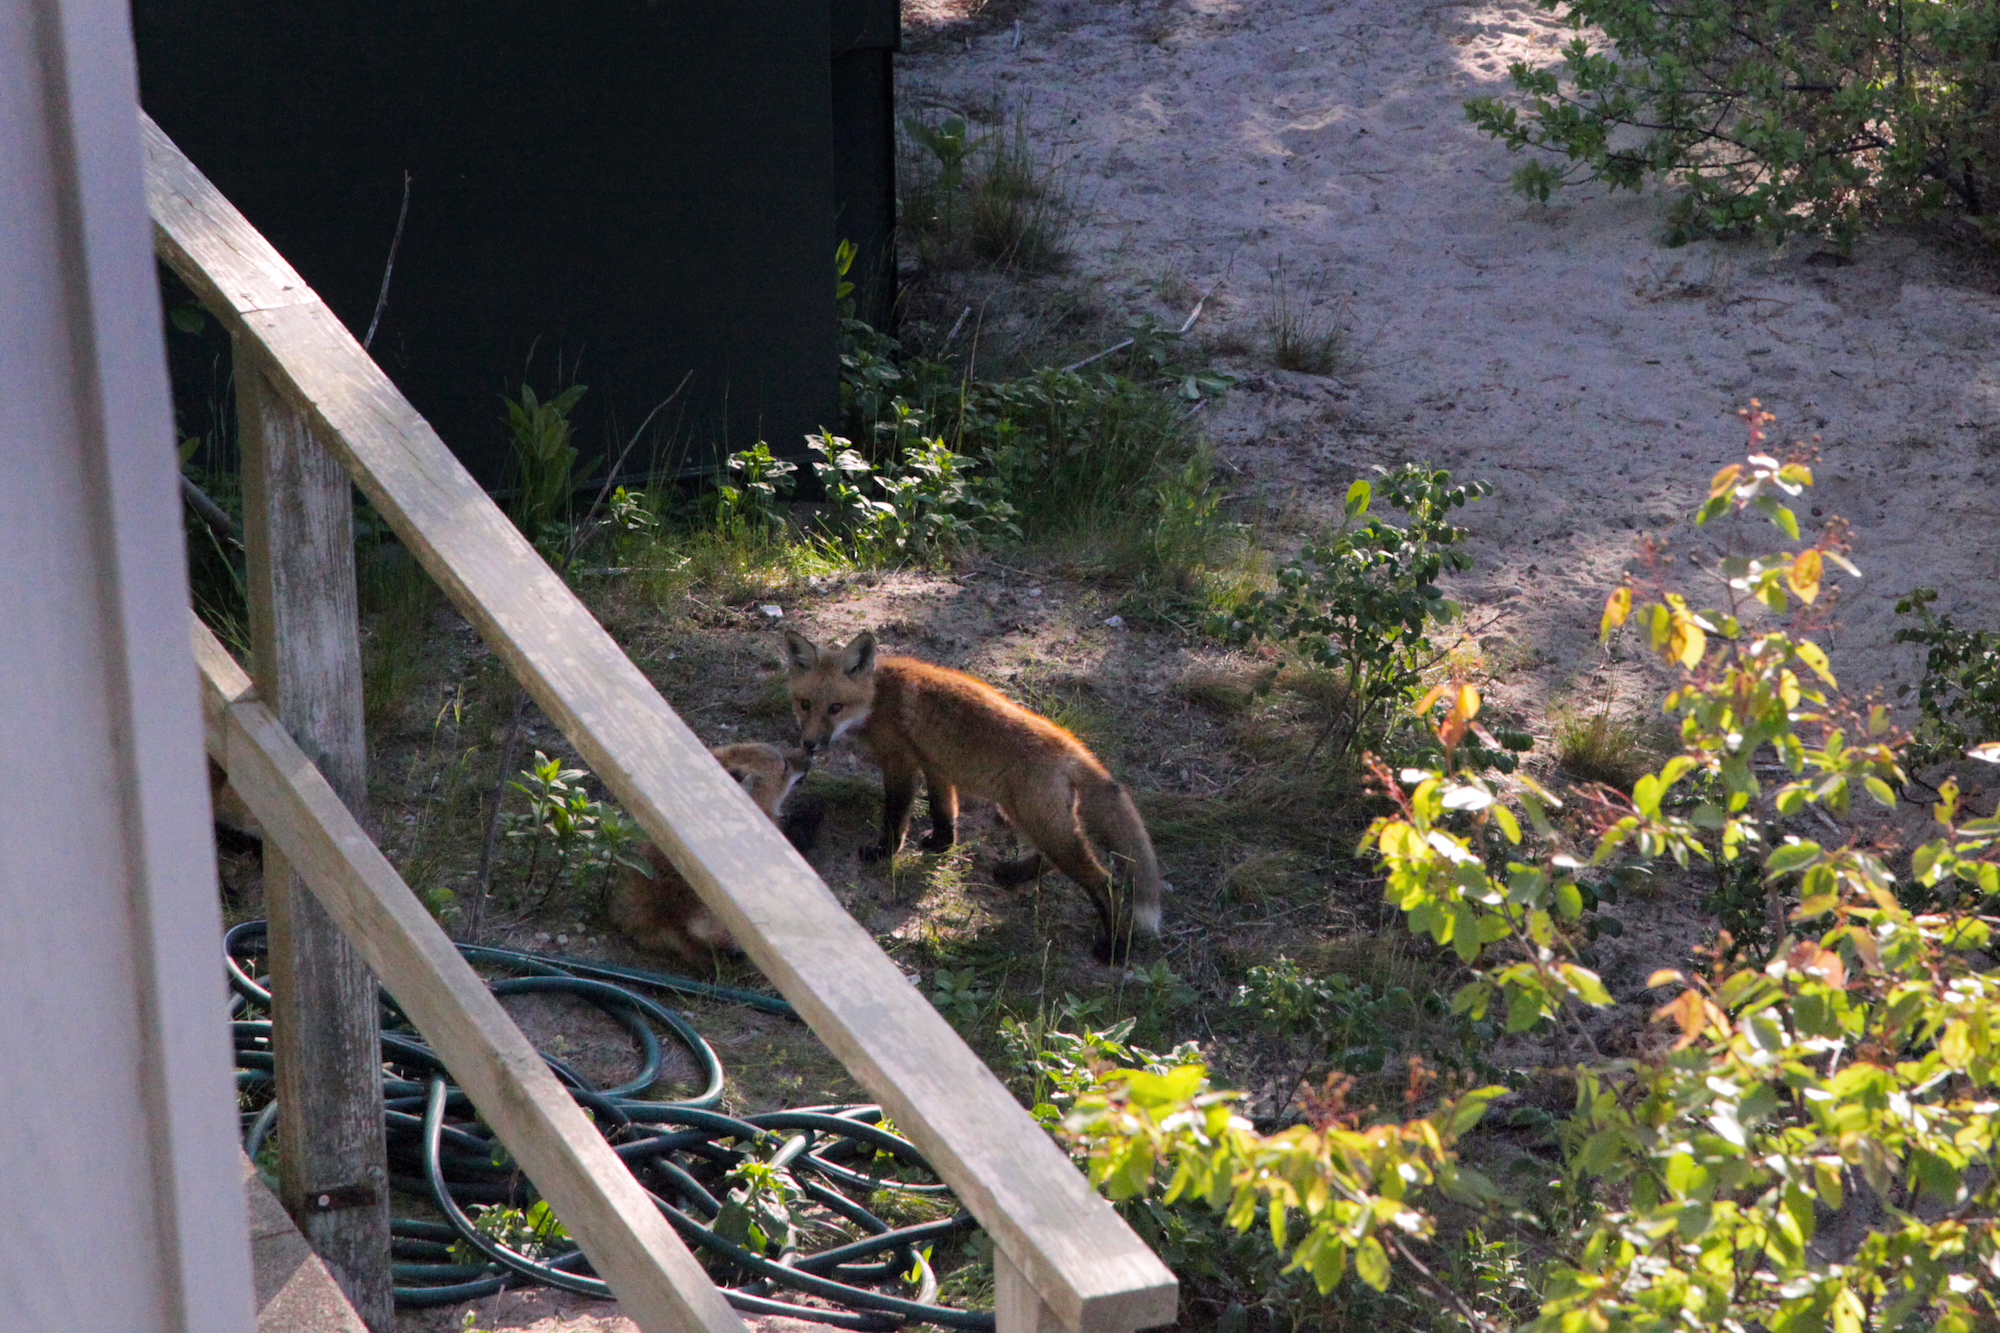 Young foxes playing at observatory at nature park in Cape Cod, MA, USA / #Travel photography by Geena Matuson @geenamatuson #thegirlmirage.